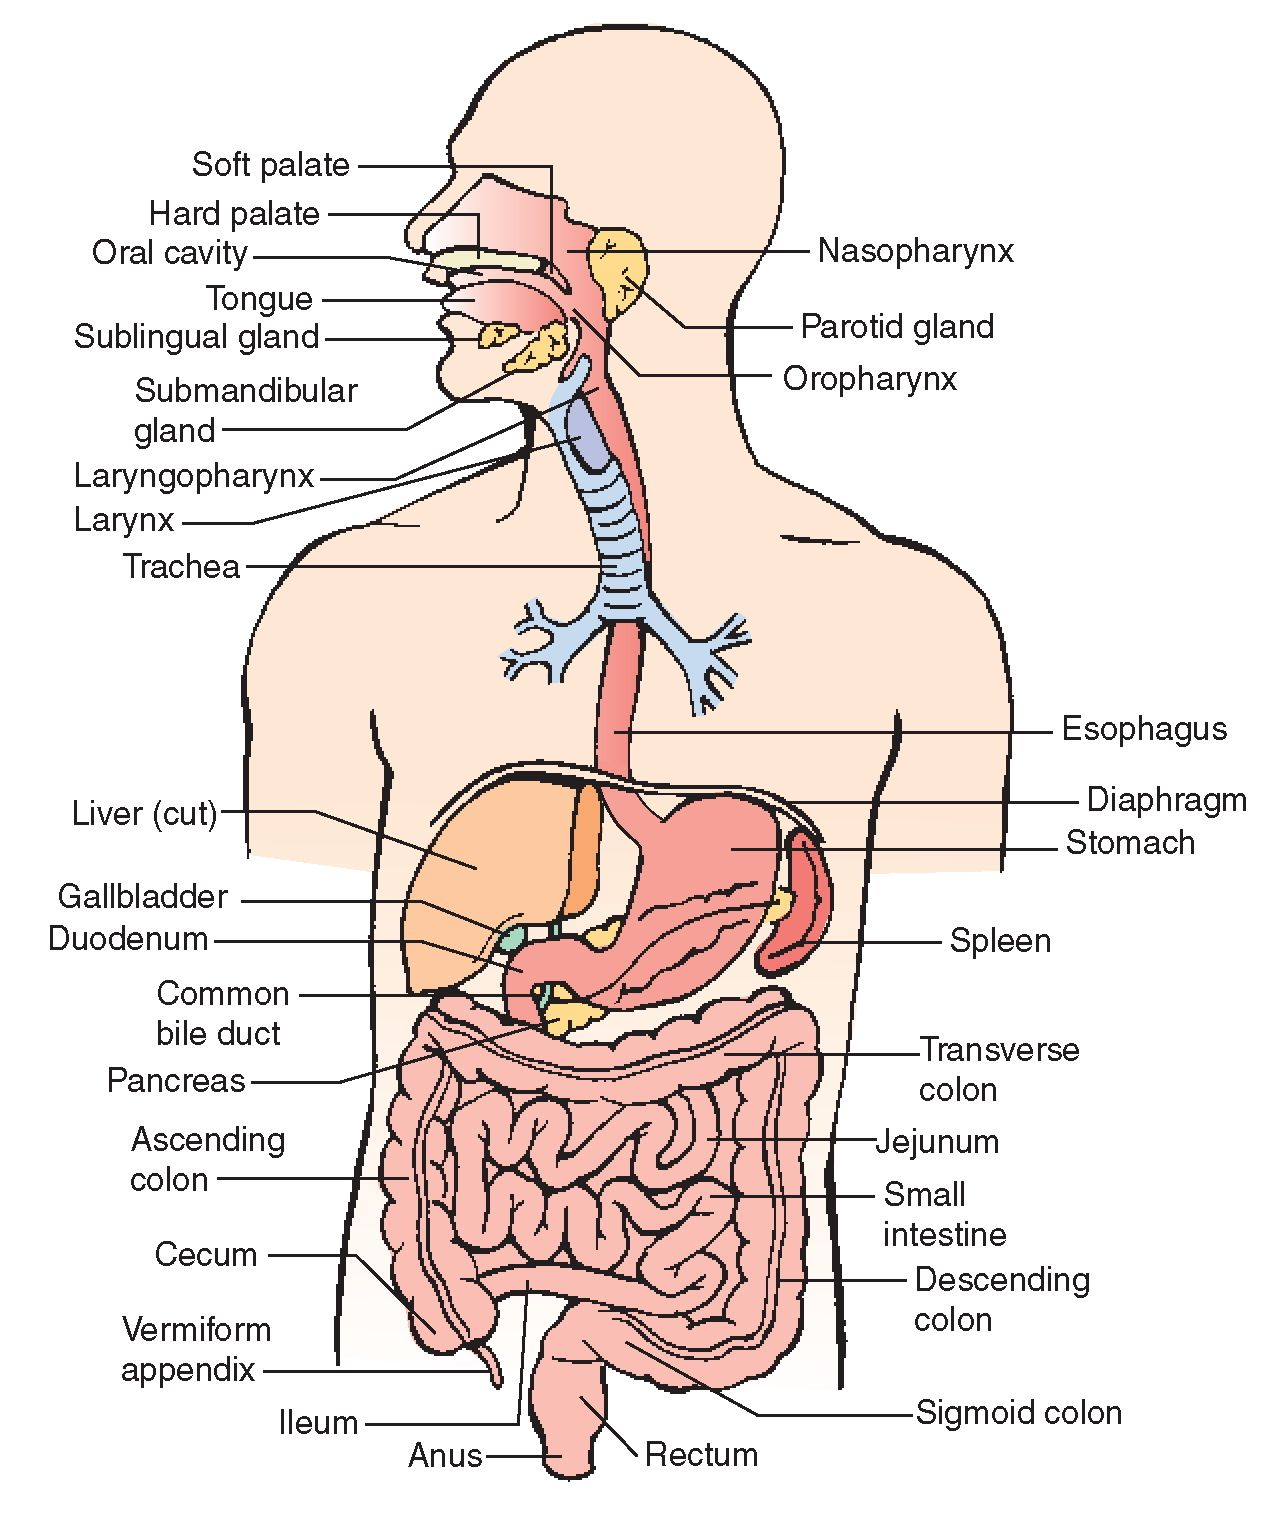 Hd Diagram Of Human Digestive And Respiratory Tract Human Body ...